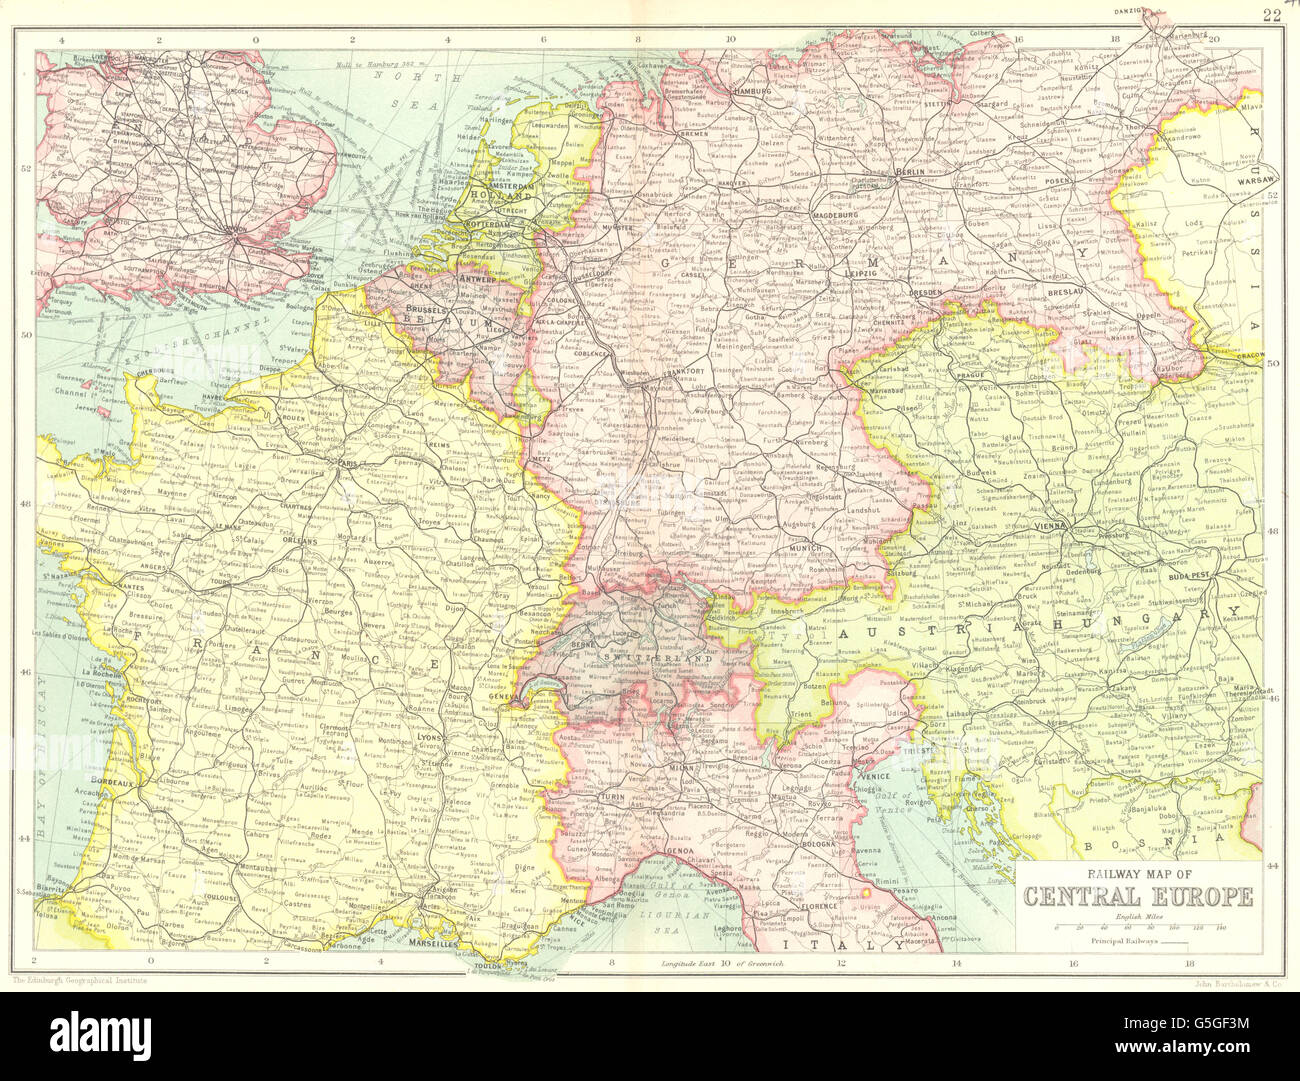 Map Of France Germany Switzerland.Central Europe Railways France Germany Austria Hungary Switzerland